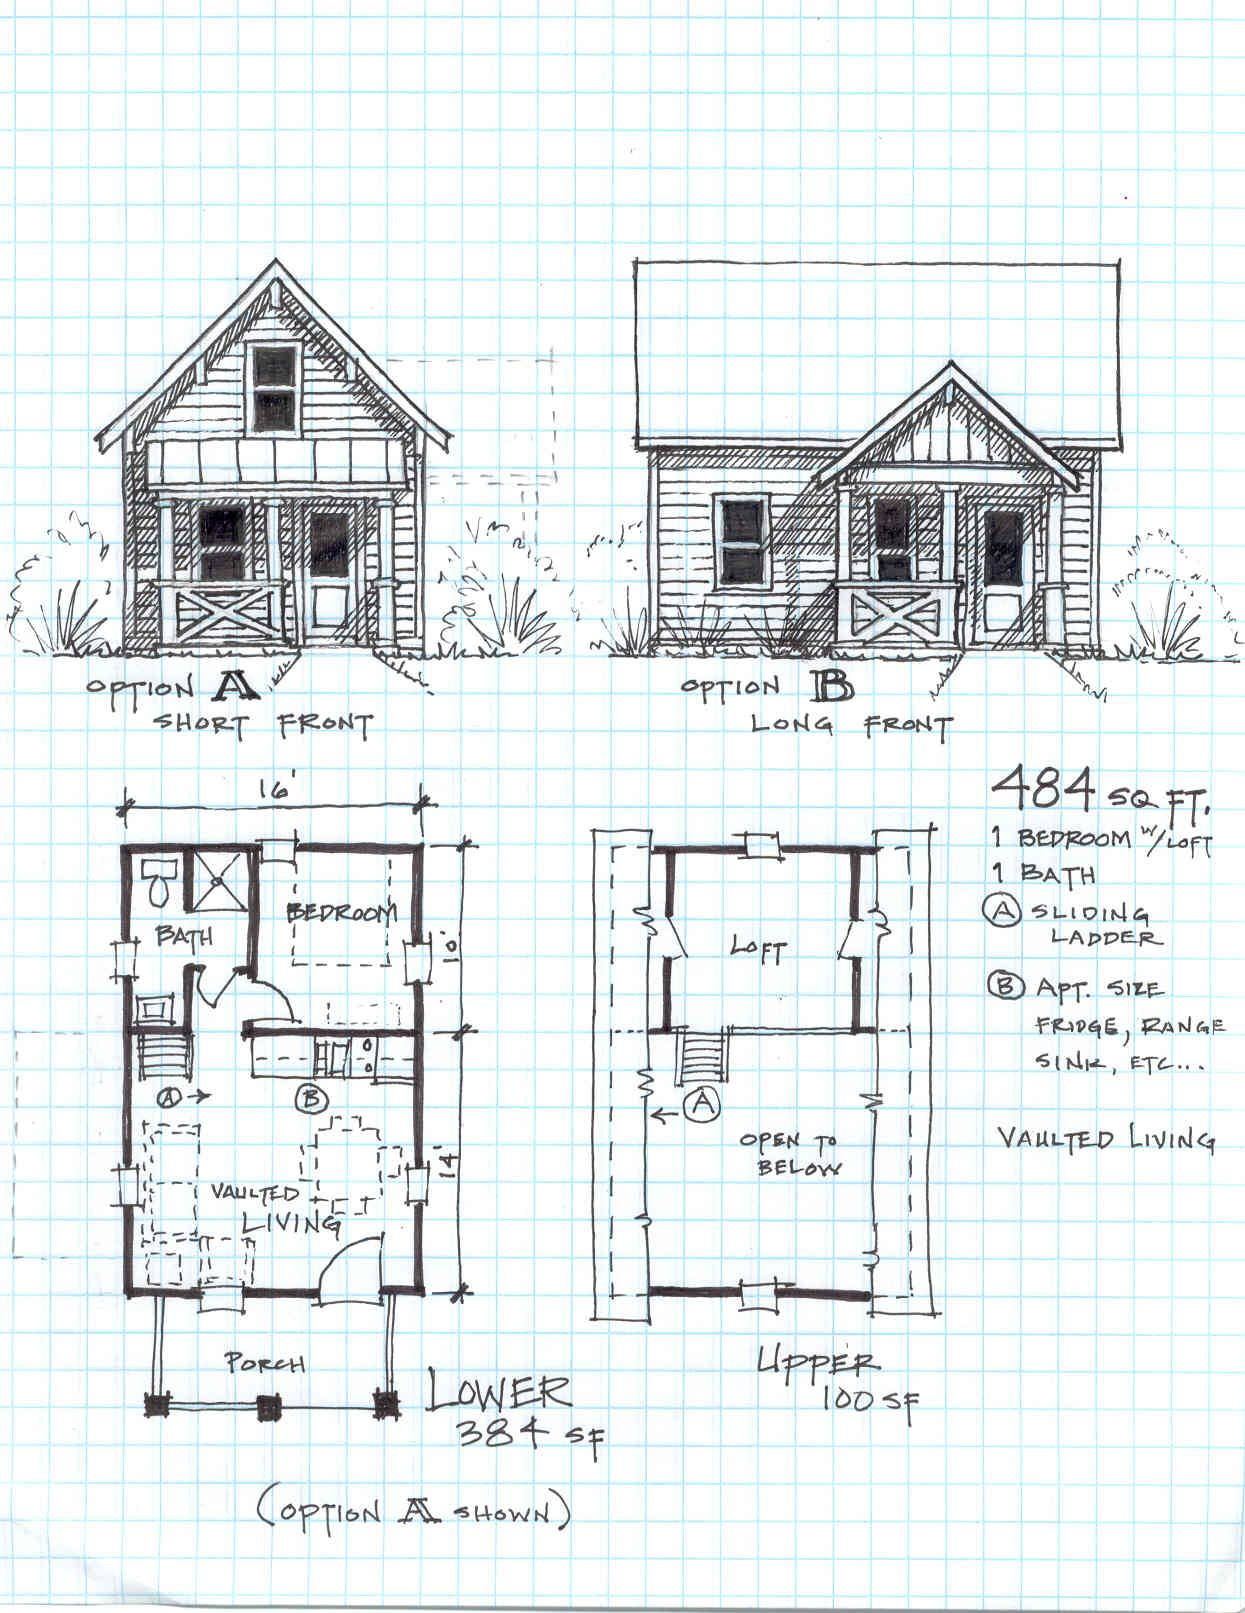 30 Small Cabin Plans For The Homestead Prepper The Survivalist Blog Small Cabin Plans Loft Floor Plans Cabin Floor Plans